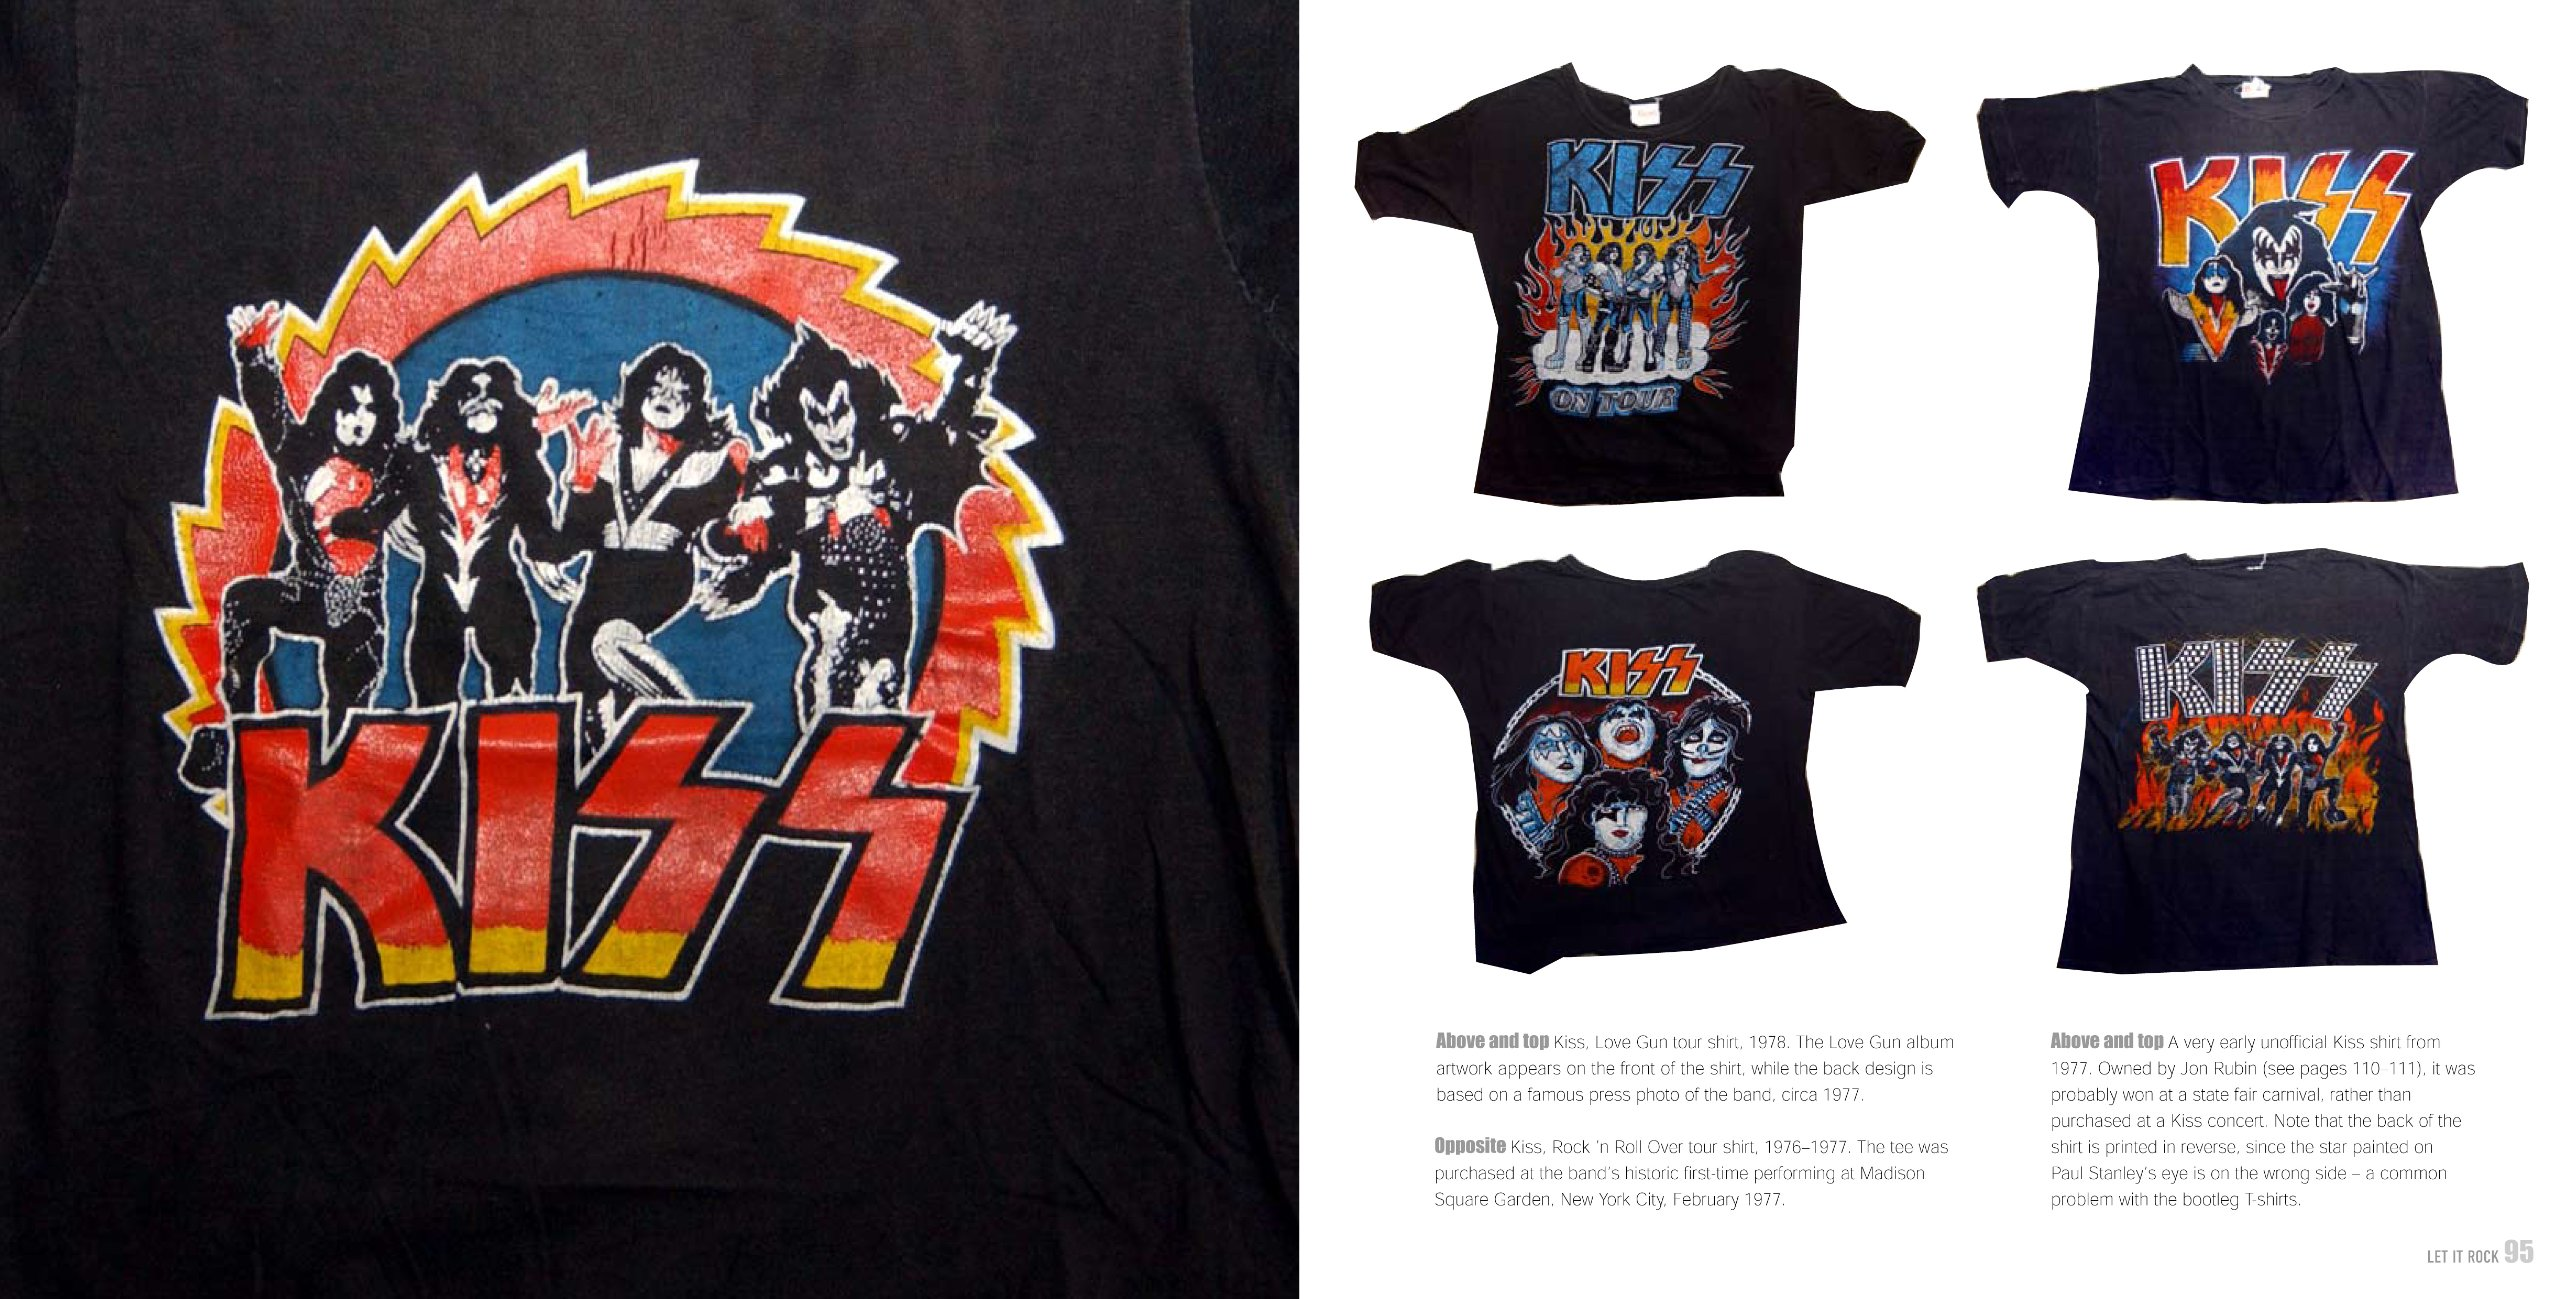 T shirt design 2 zeixs - Classic Rock T Shirts Over 400 Vintage Tees From The 70s And 80s Amazon Co Uk Sam Knee 9781847329196 Books